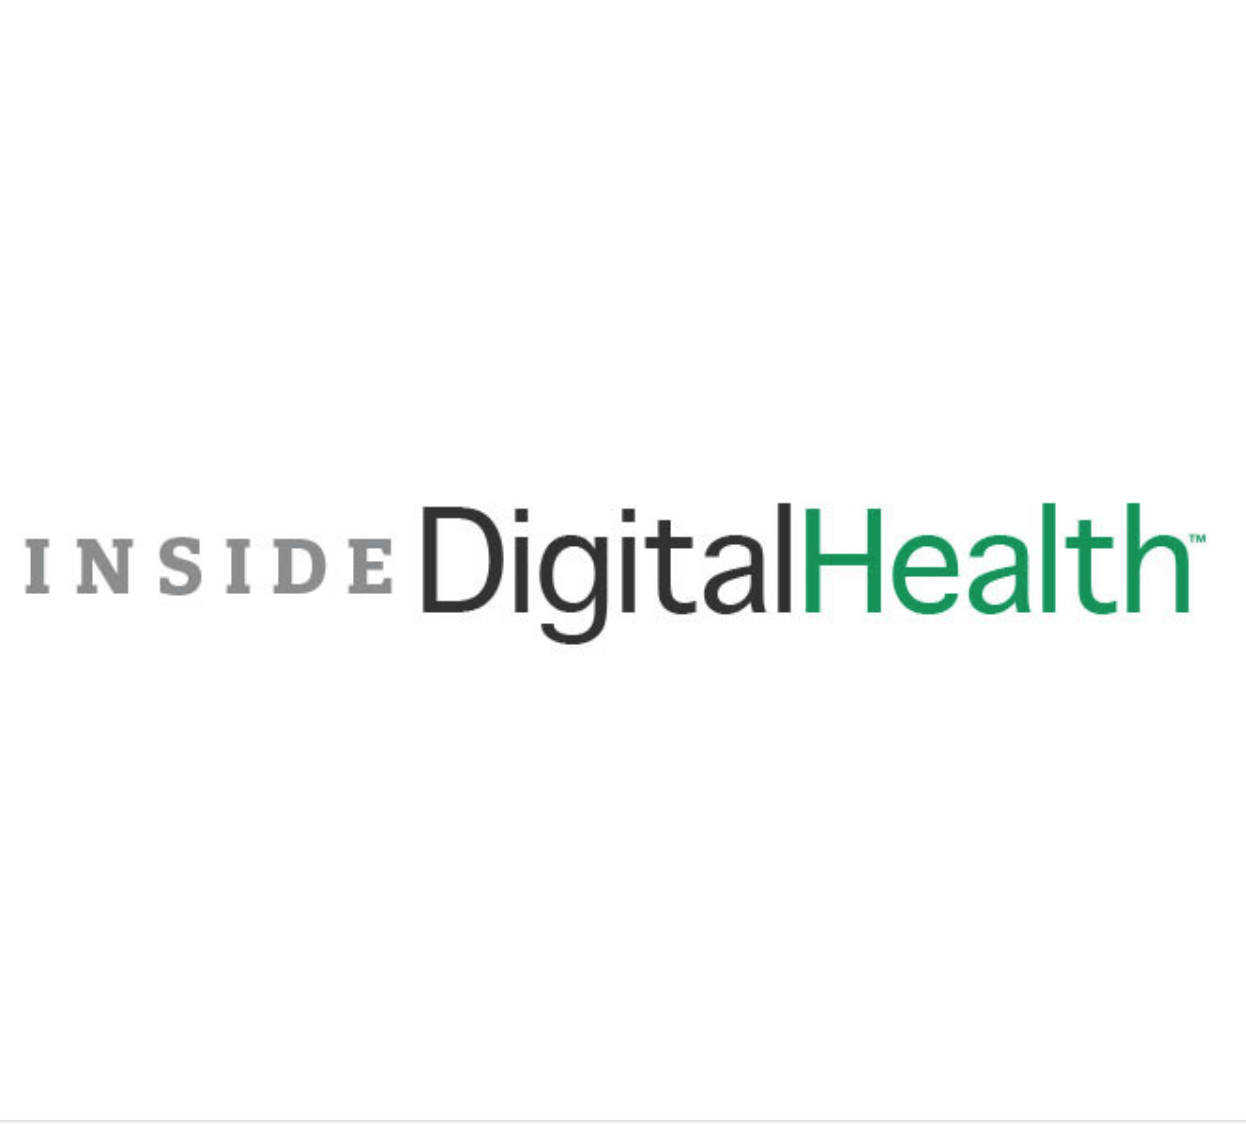 Inside Digital Health